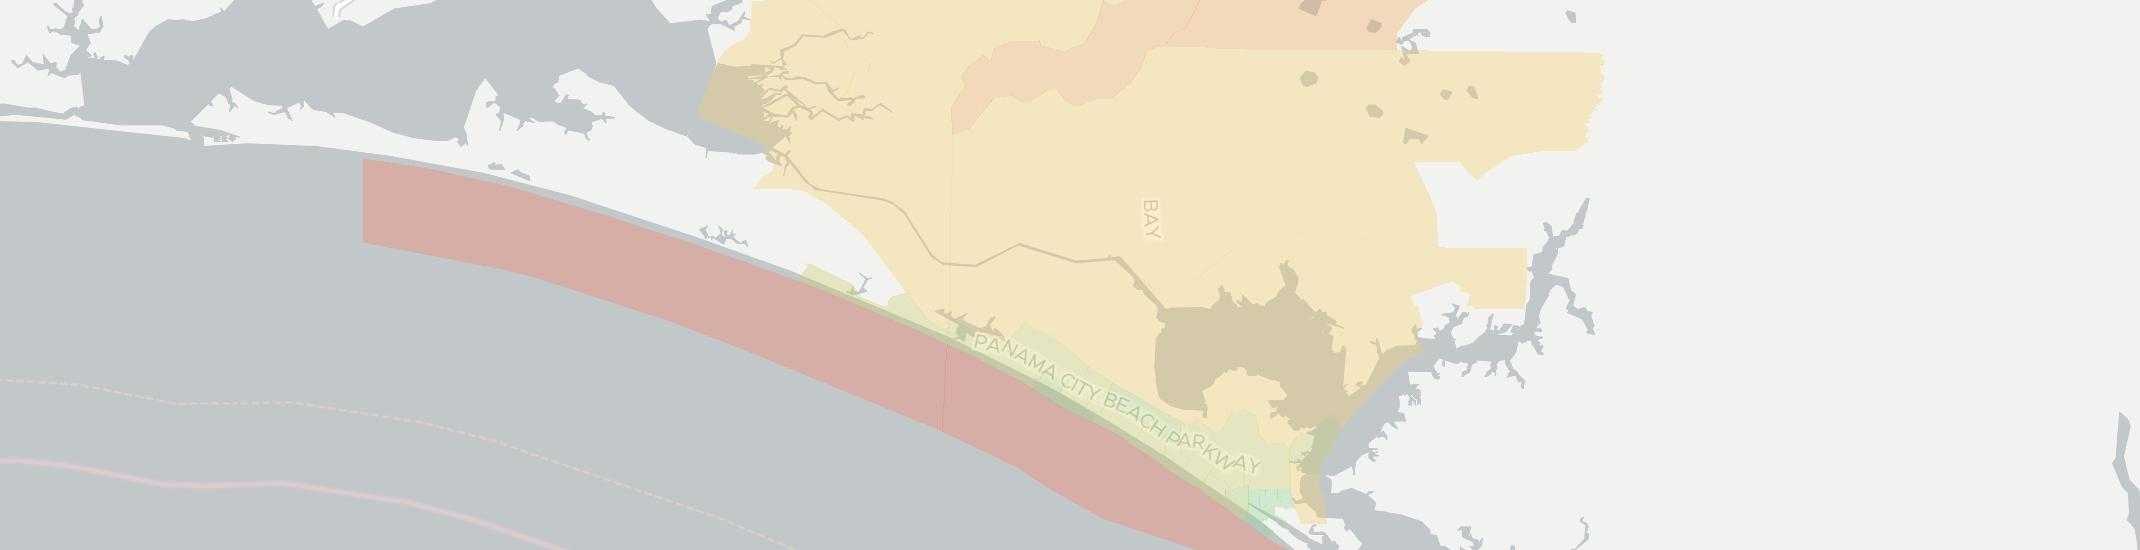 Map Of Panama City Beach Florida.Internet Providers In Panama City Beach Compare 14 Providers